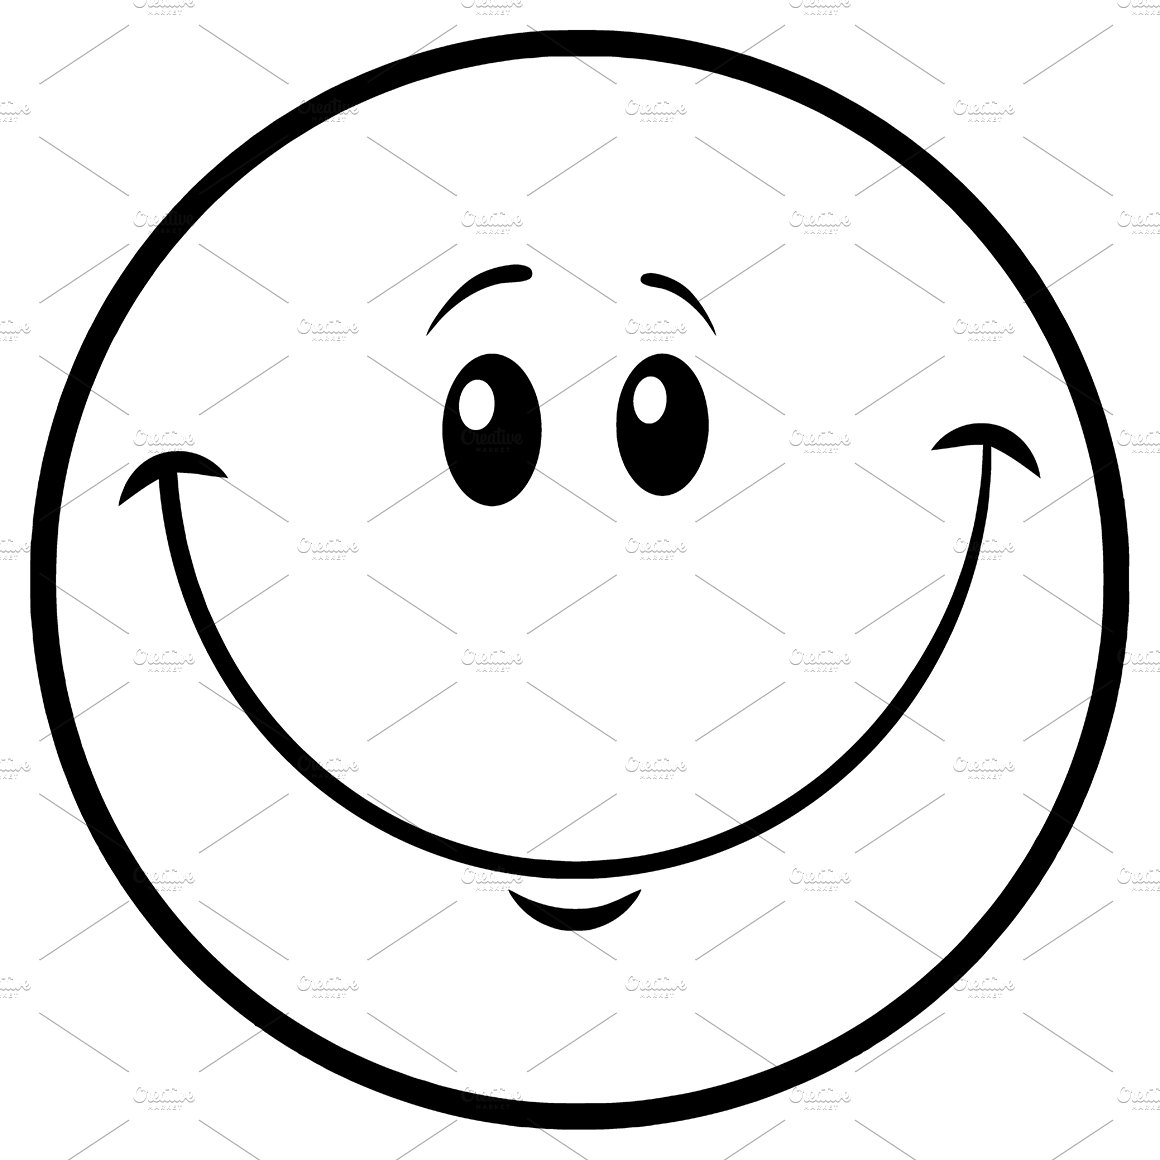 One Line Art Smiley : Black and white smiley face emoji illustrations